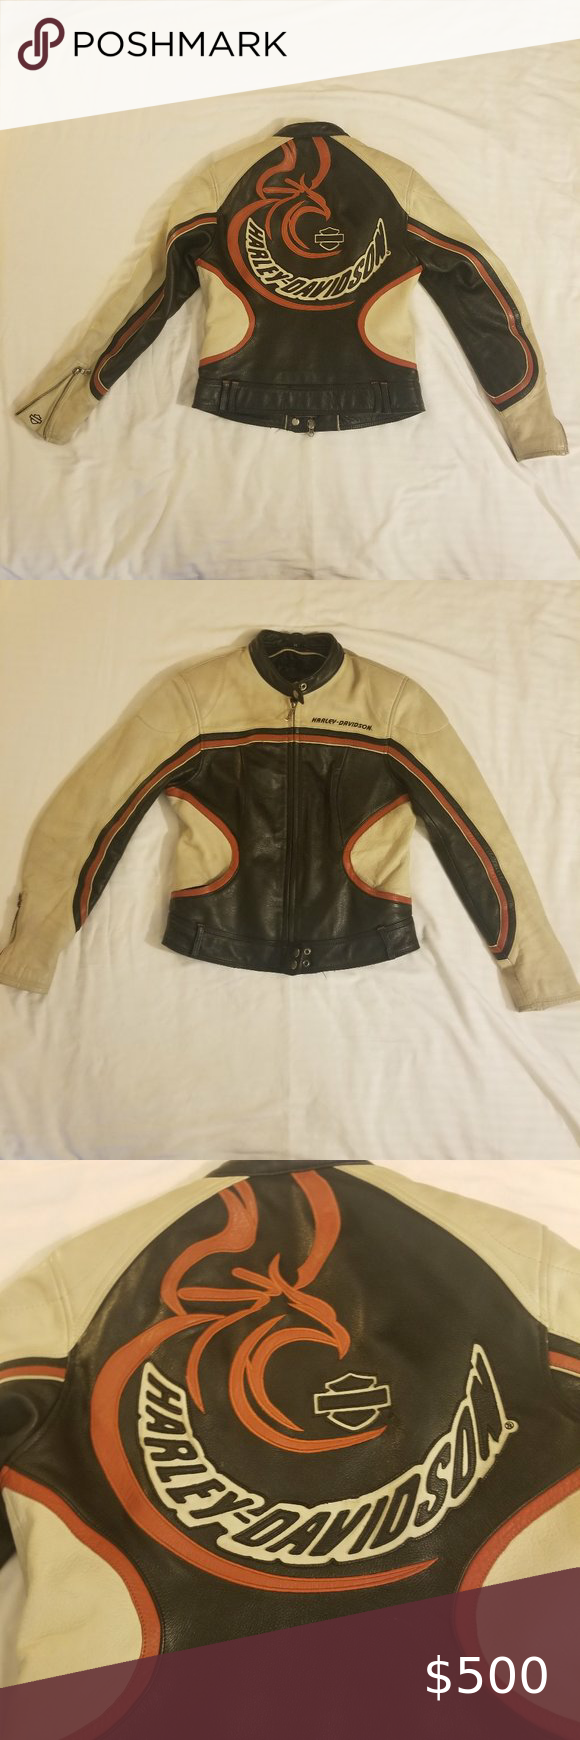 Rare Harley Davidson Phoenix Leather Jacket M In 2020 Harley Davidson Jacket Leather Jacket Jackets